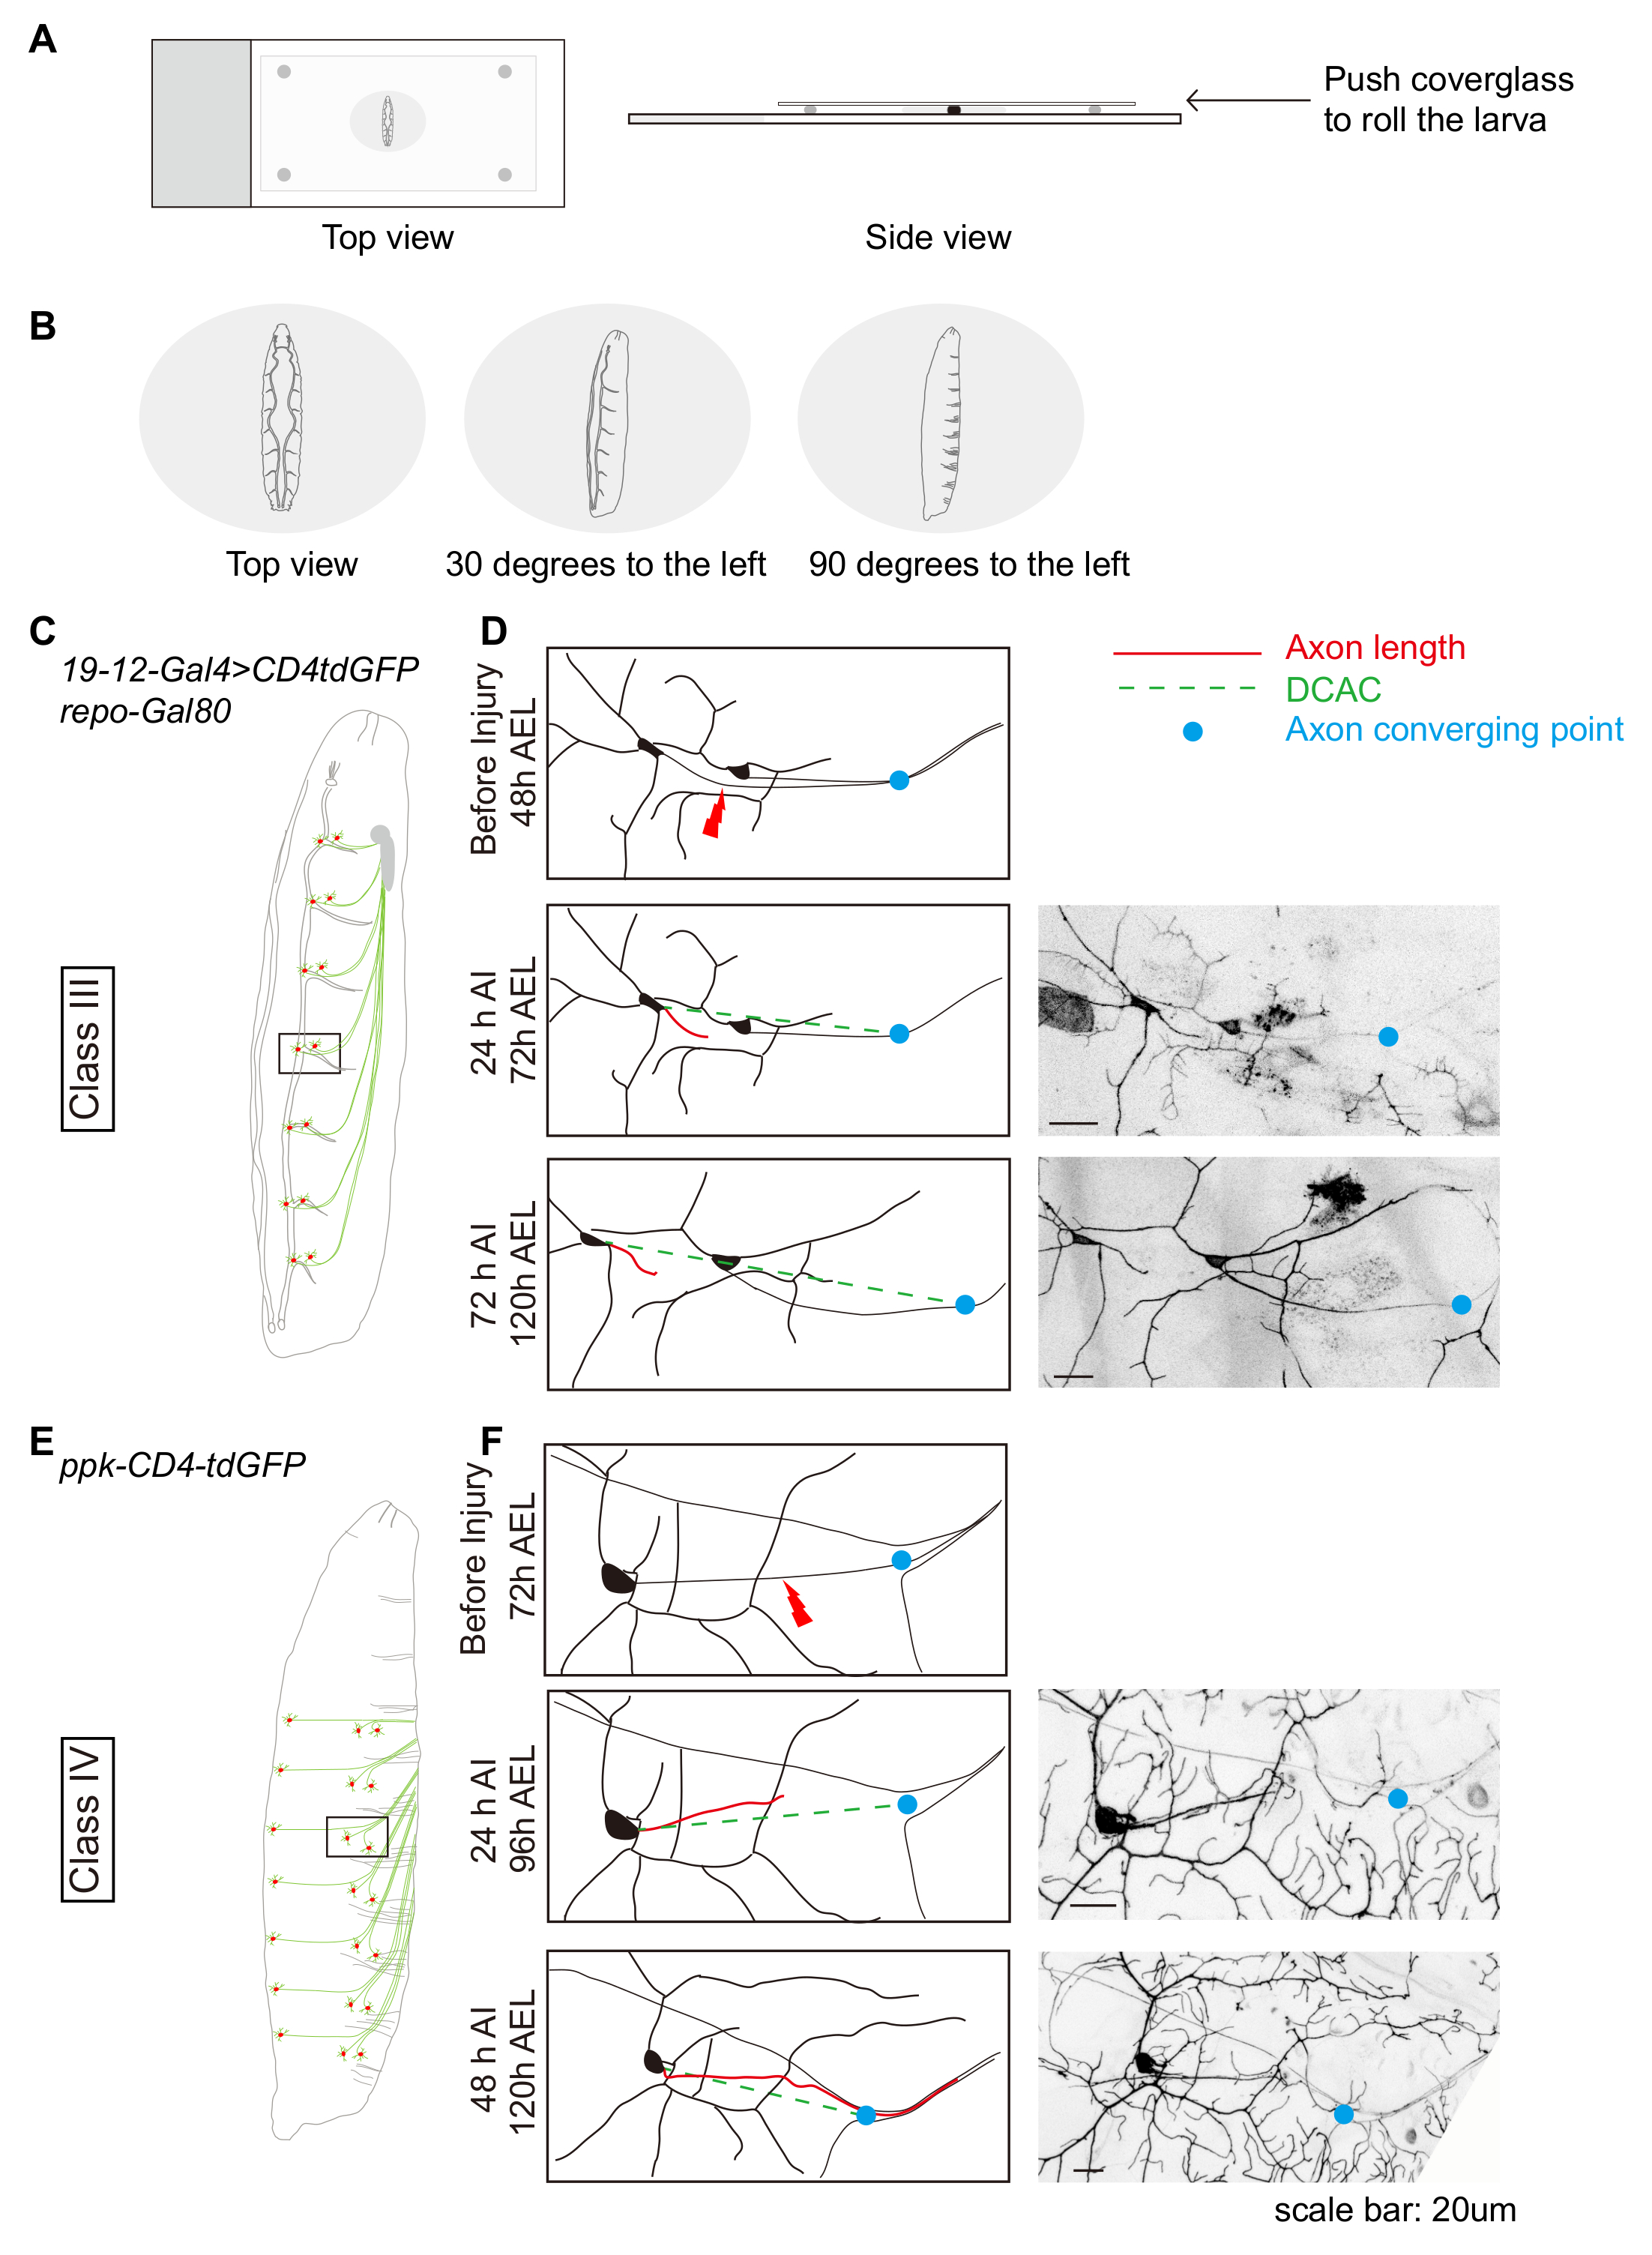 A Drosophila In Vivo Injury Model For Studying